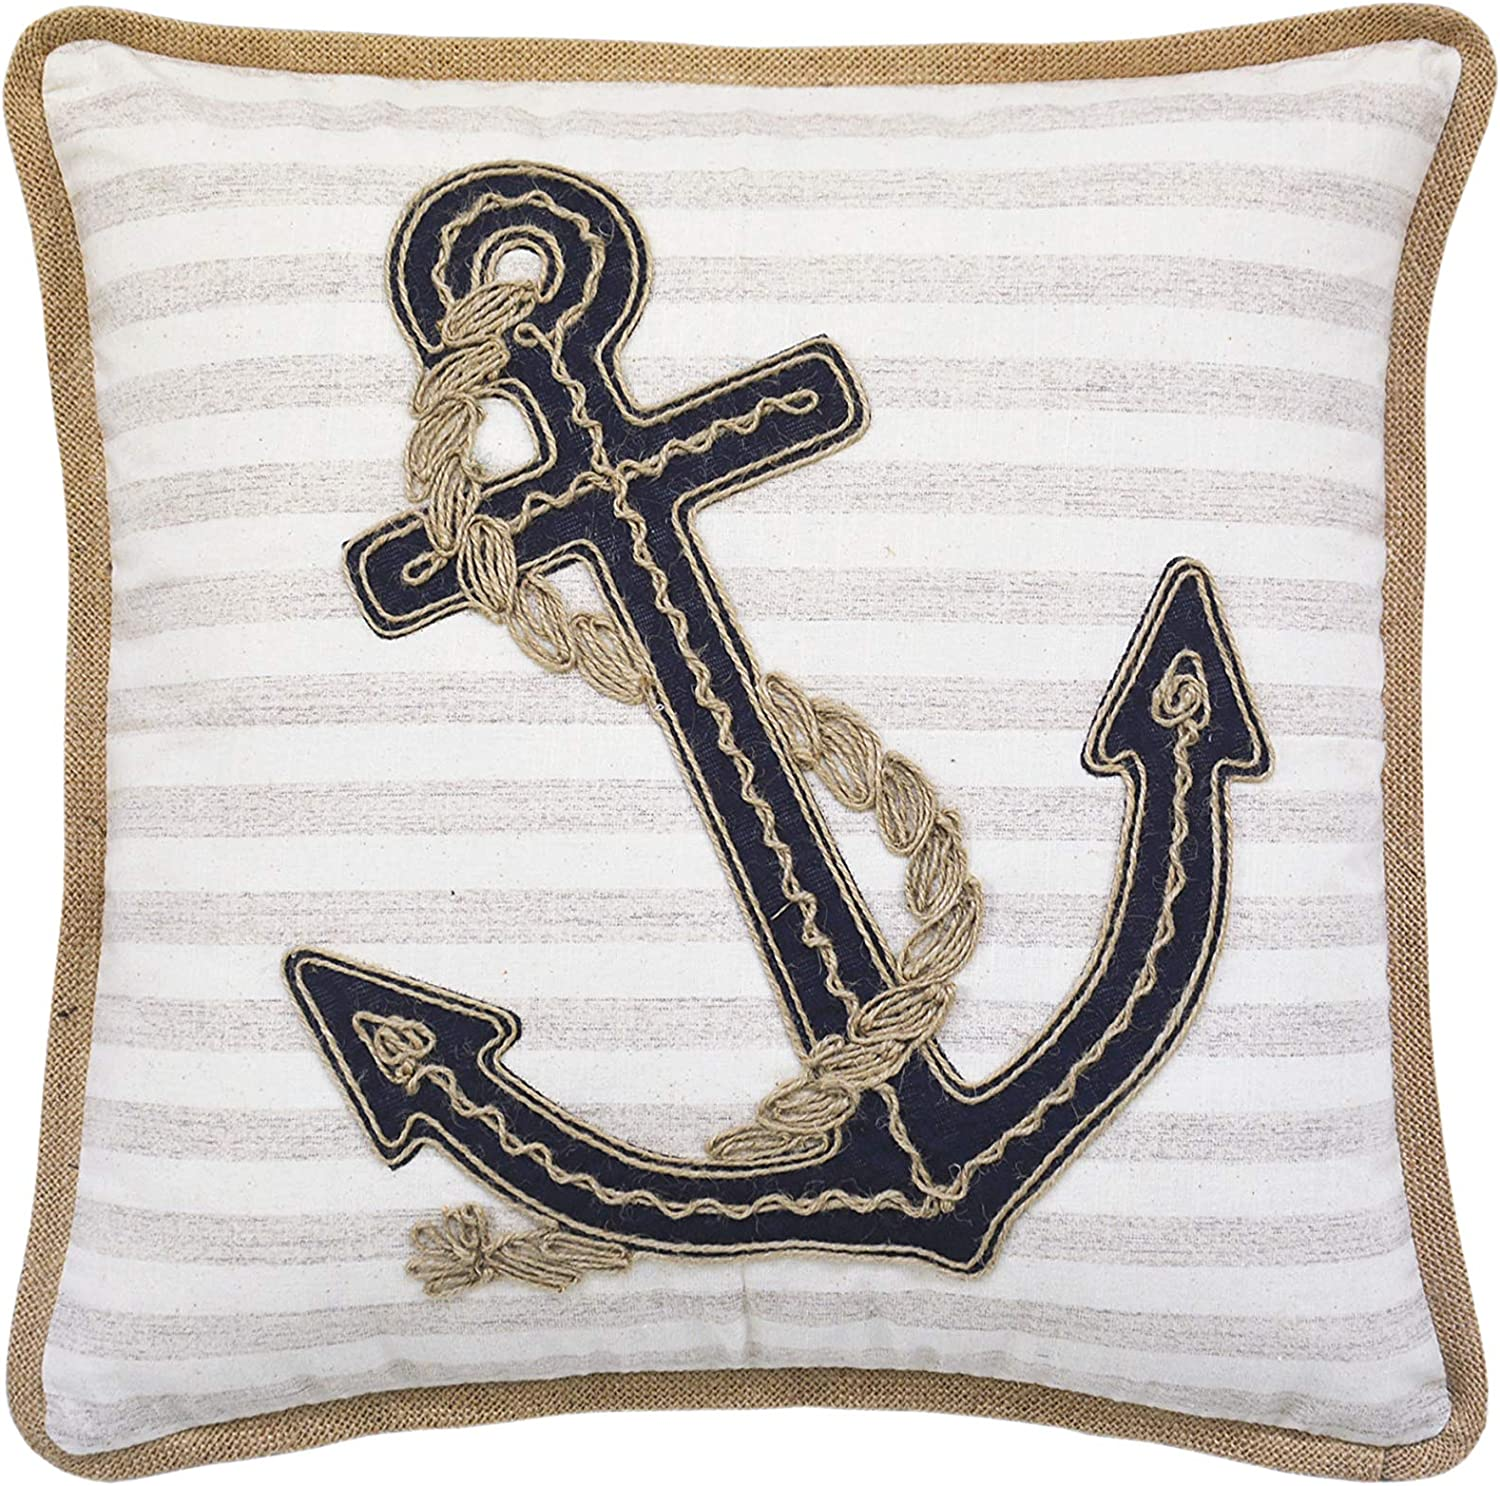 Lea Unlimited Beach Life Anchor Throw Pillow with Burlap Cording Decorative Pillow, Multi